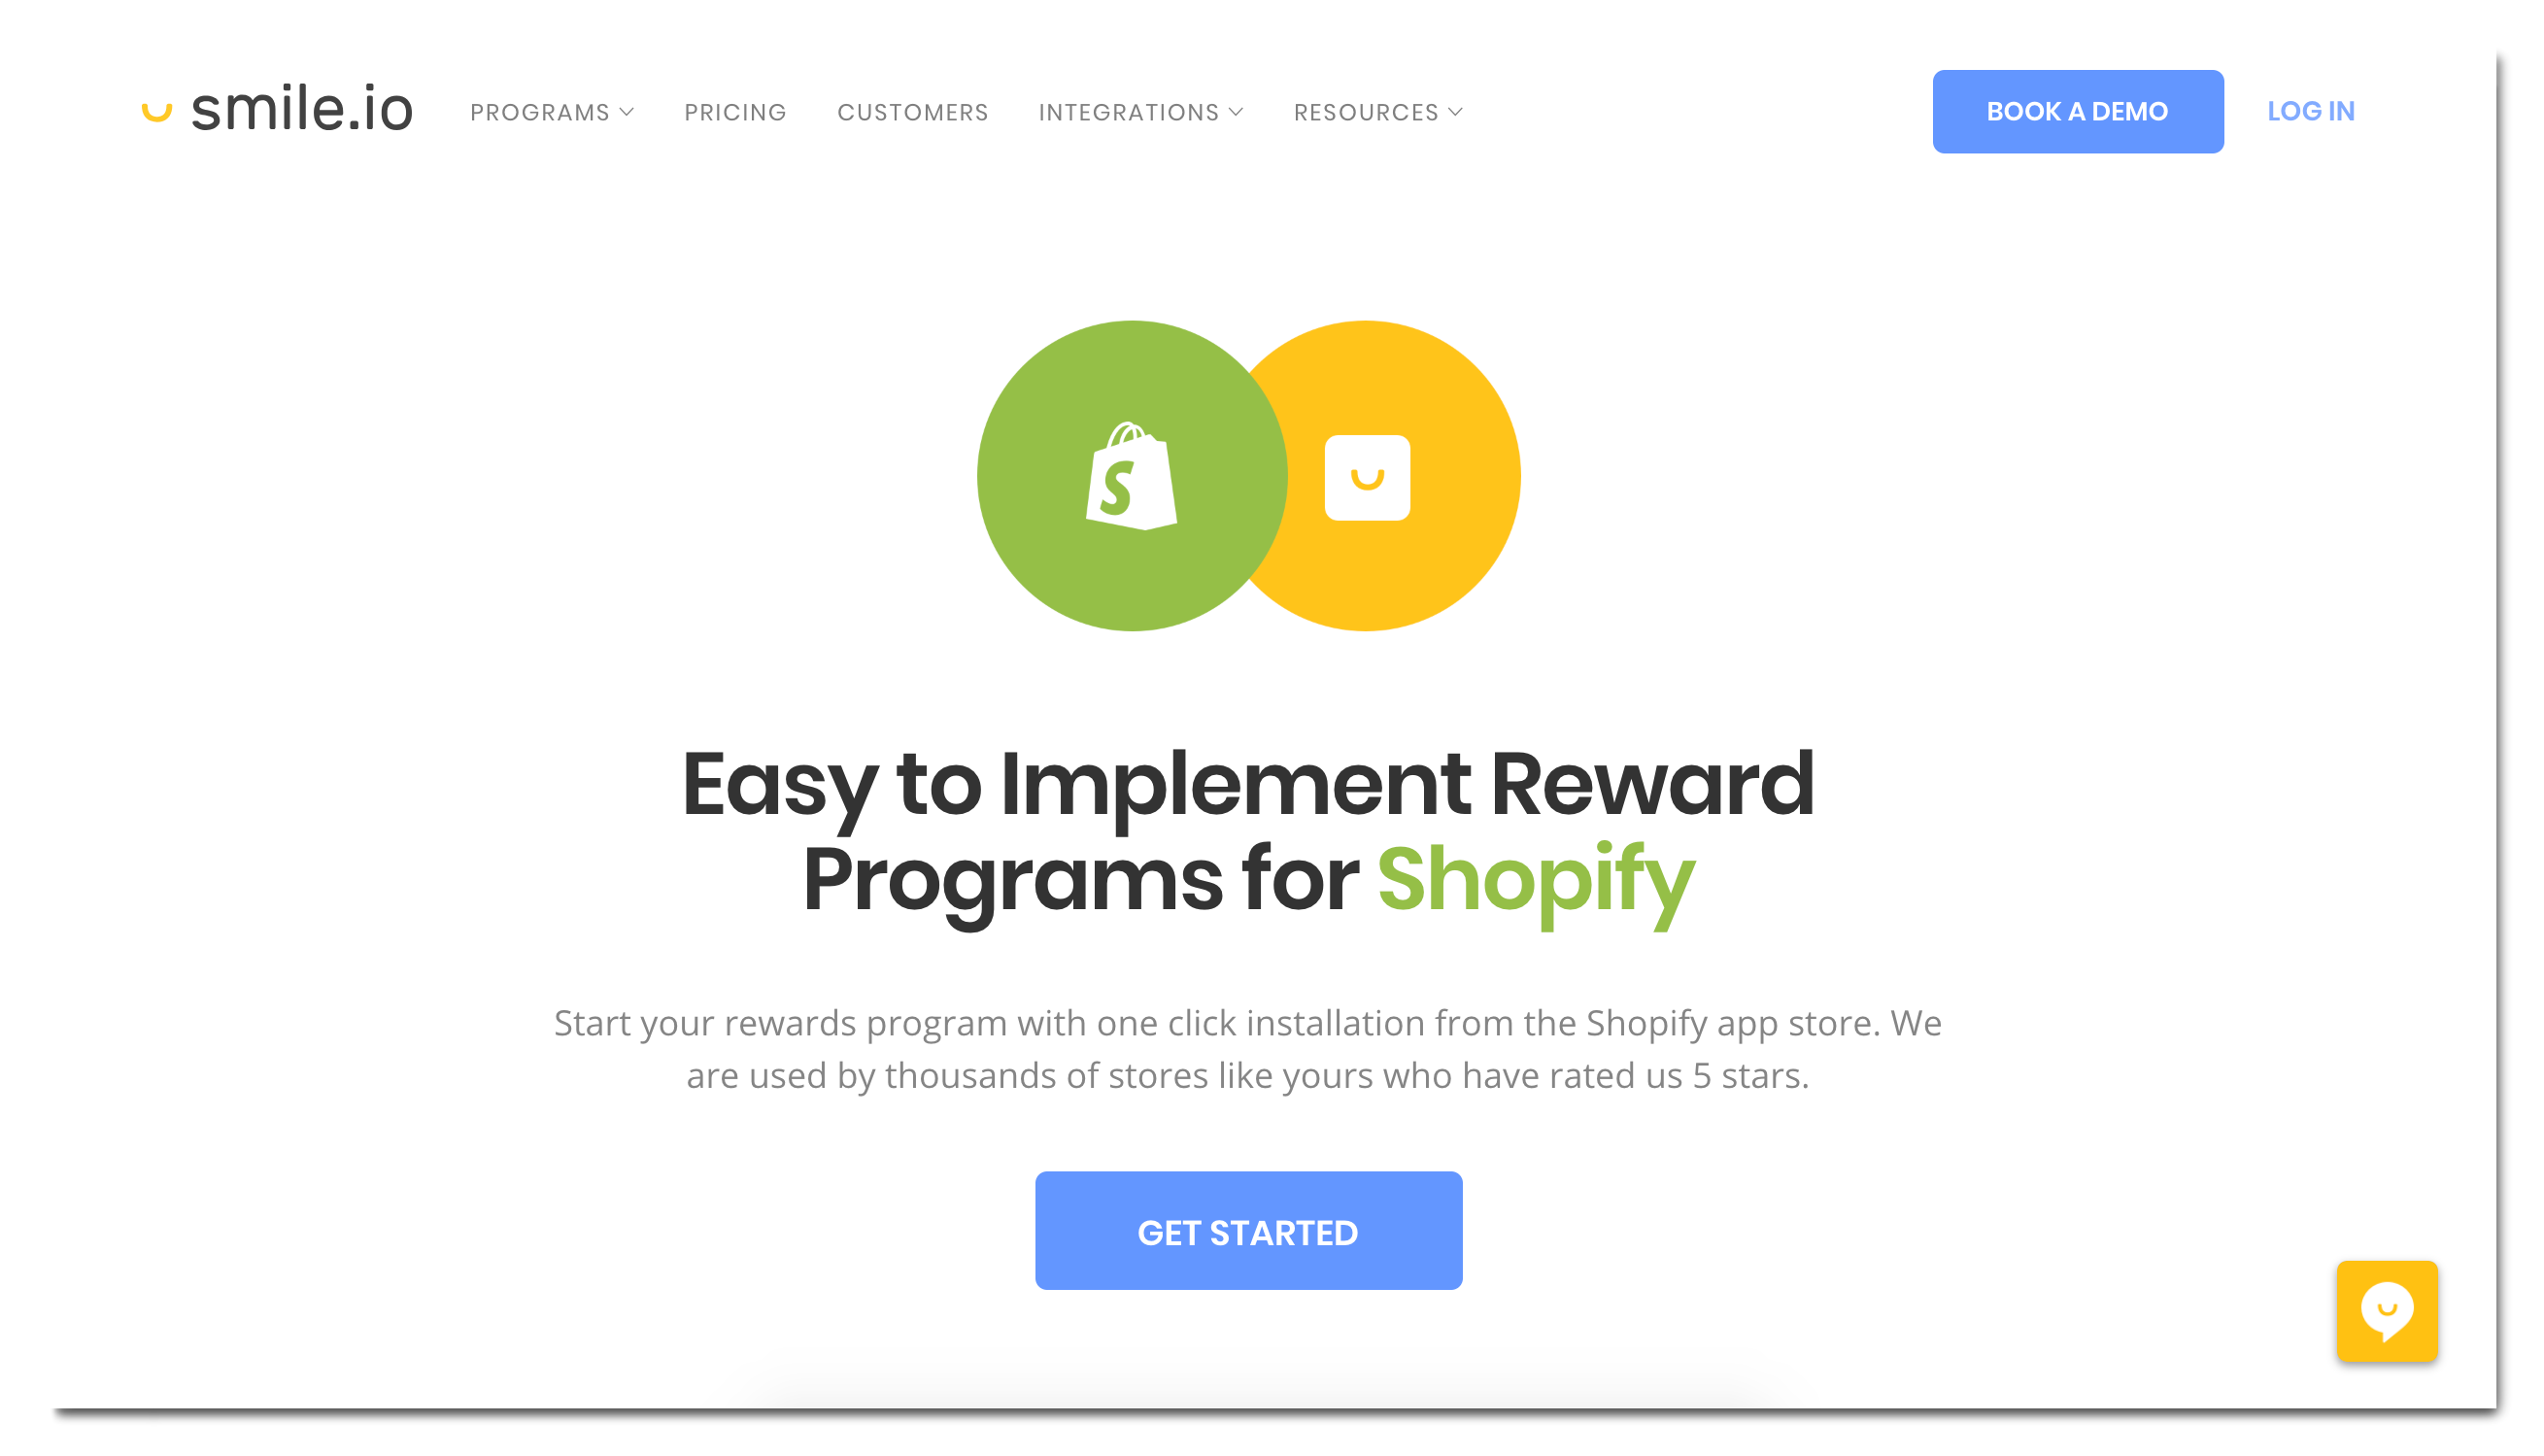 Smile.io Shopify アプリ